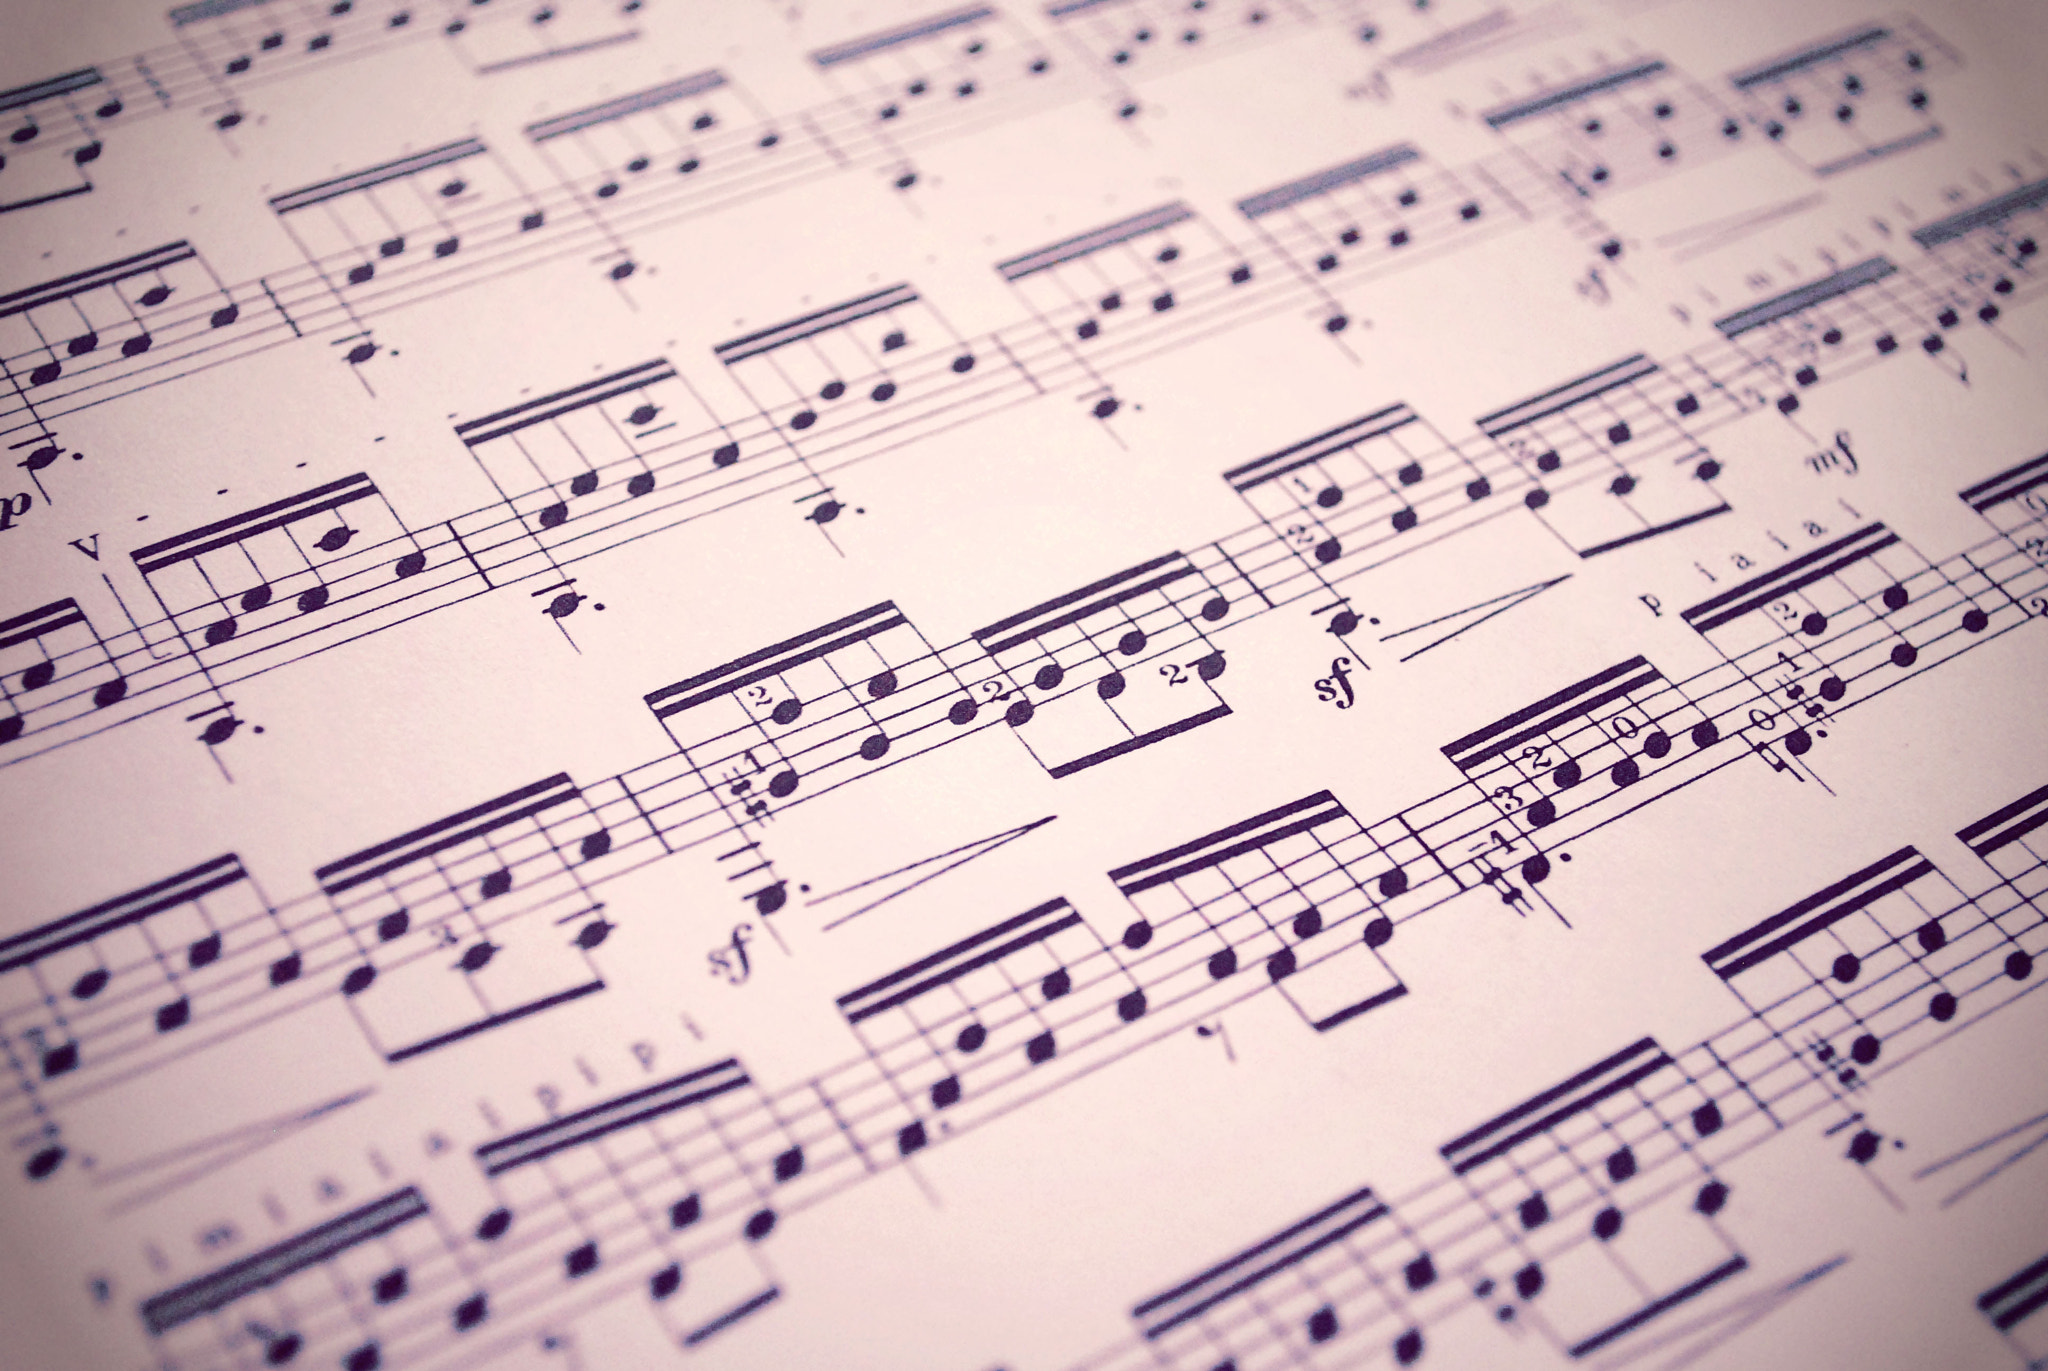 Photograph Music by Vita R. on 500px